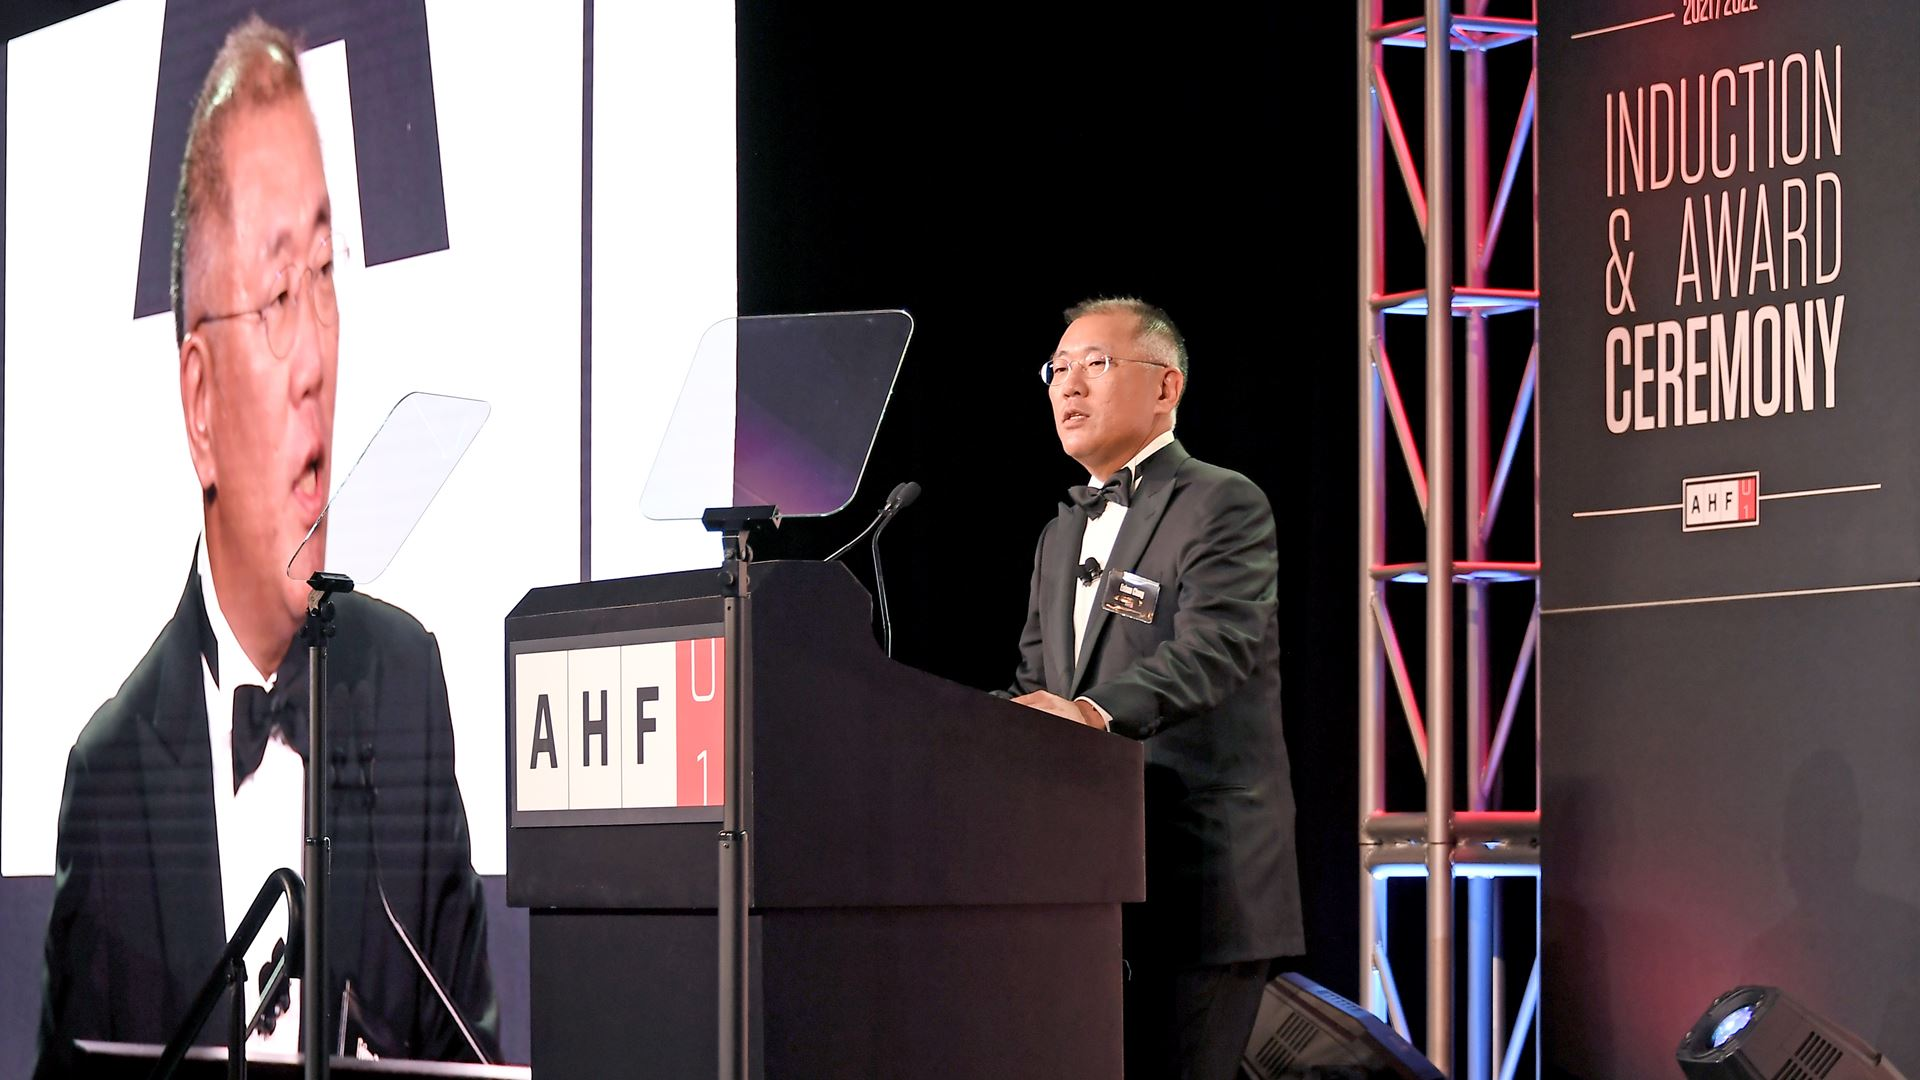 Hyundai Motor Group Honorary Chairman Mong-Koo Chung Inducted Into Automotive Hall of Fame at Official Ceremony - Image 1